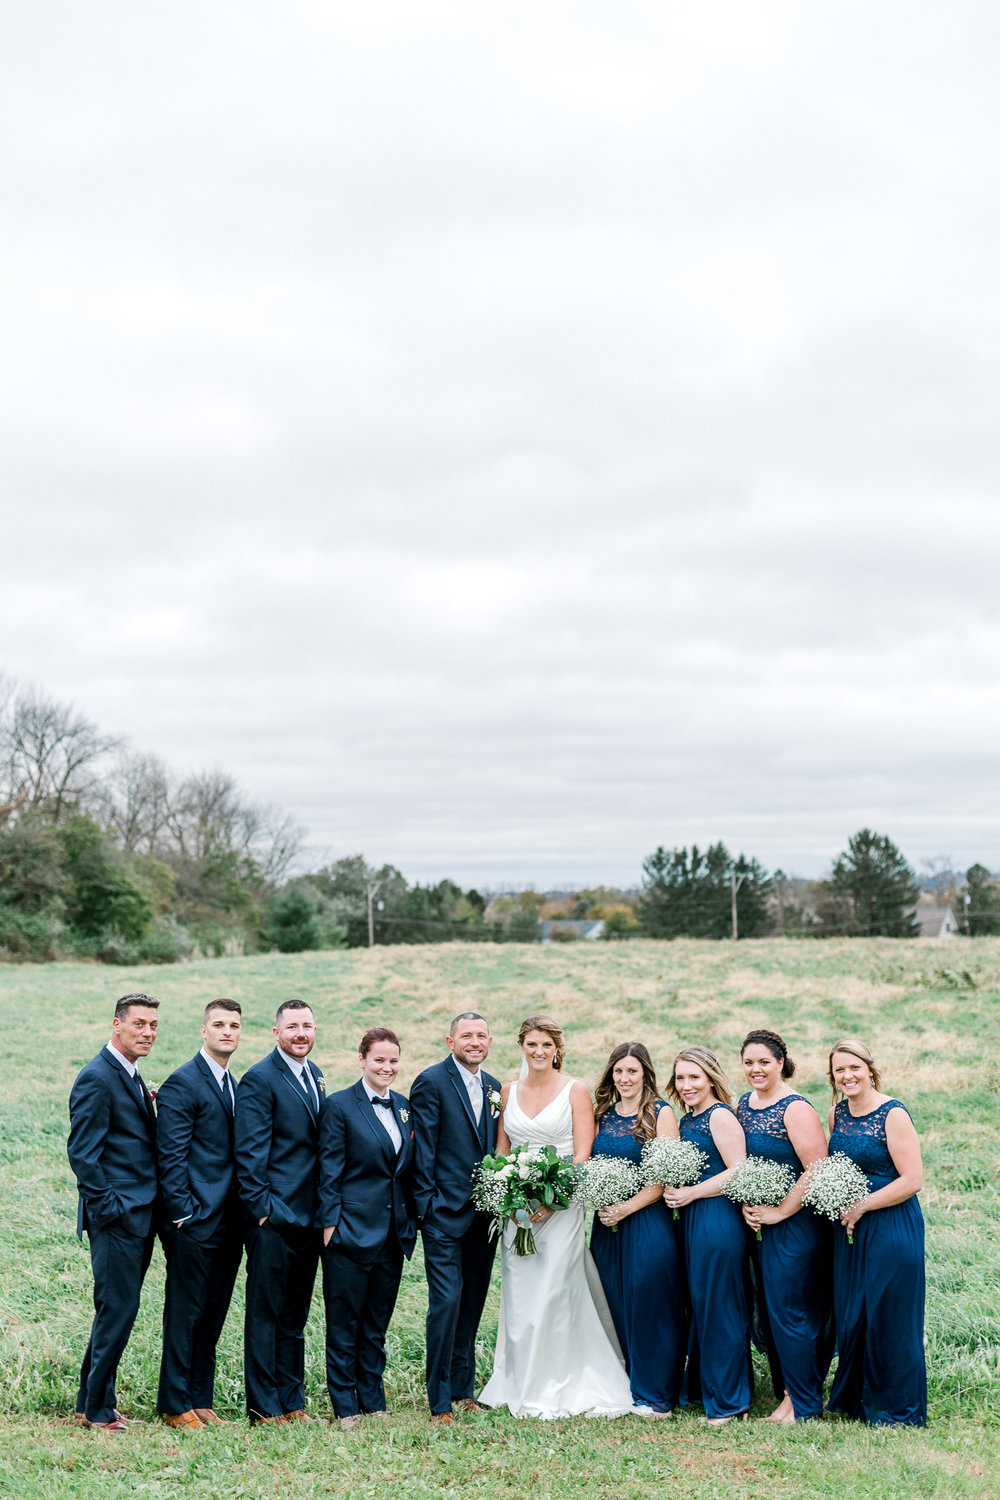 Pennsylvania October Fall Lehigh Valley wedding and lifestyle photographer Lytle Photo Co (110 of 167).jpg